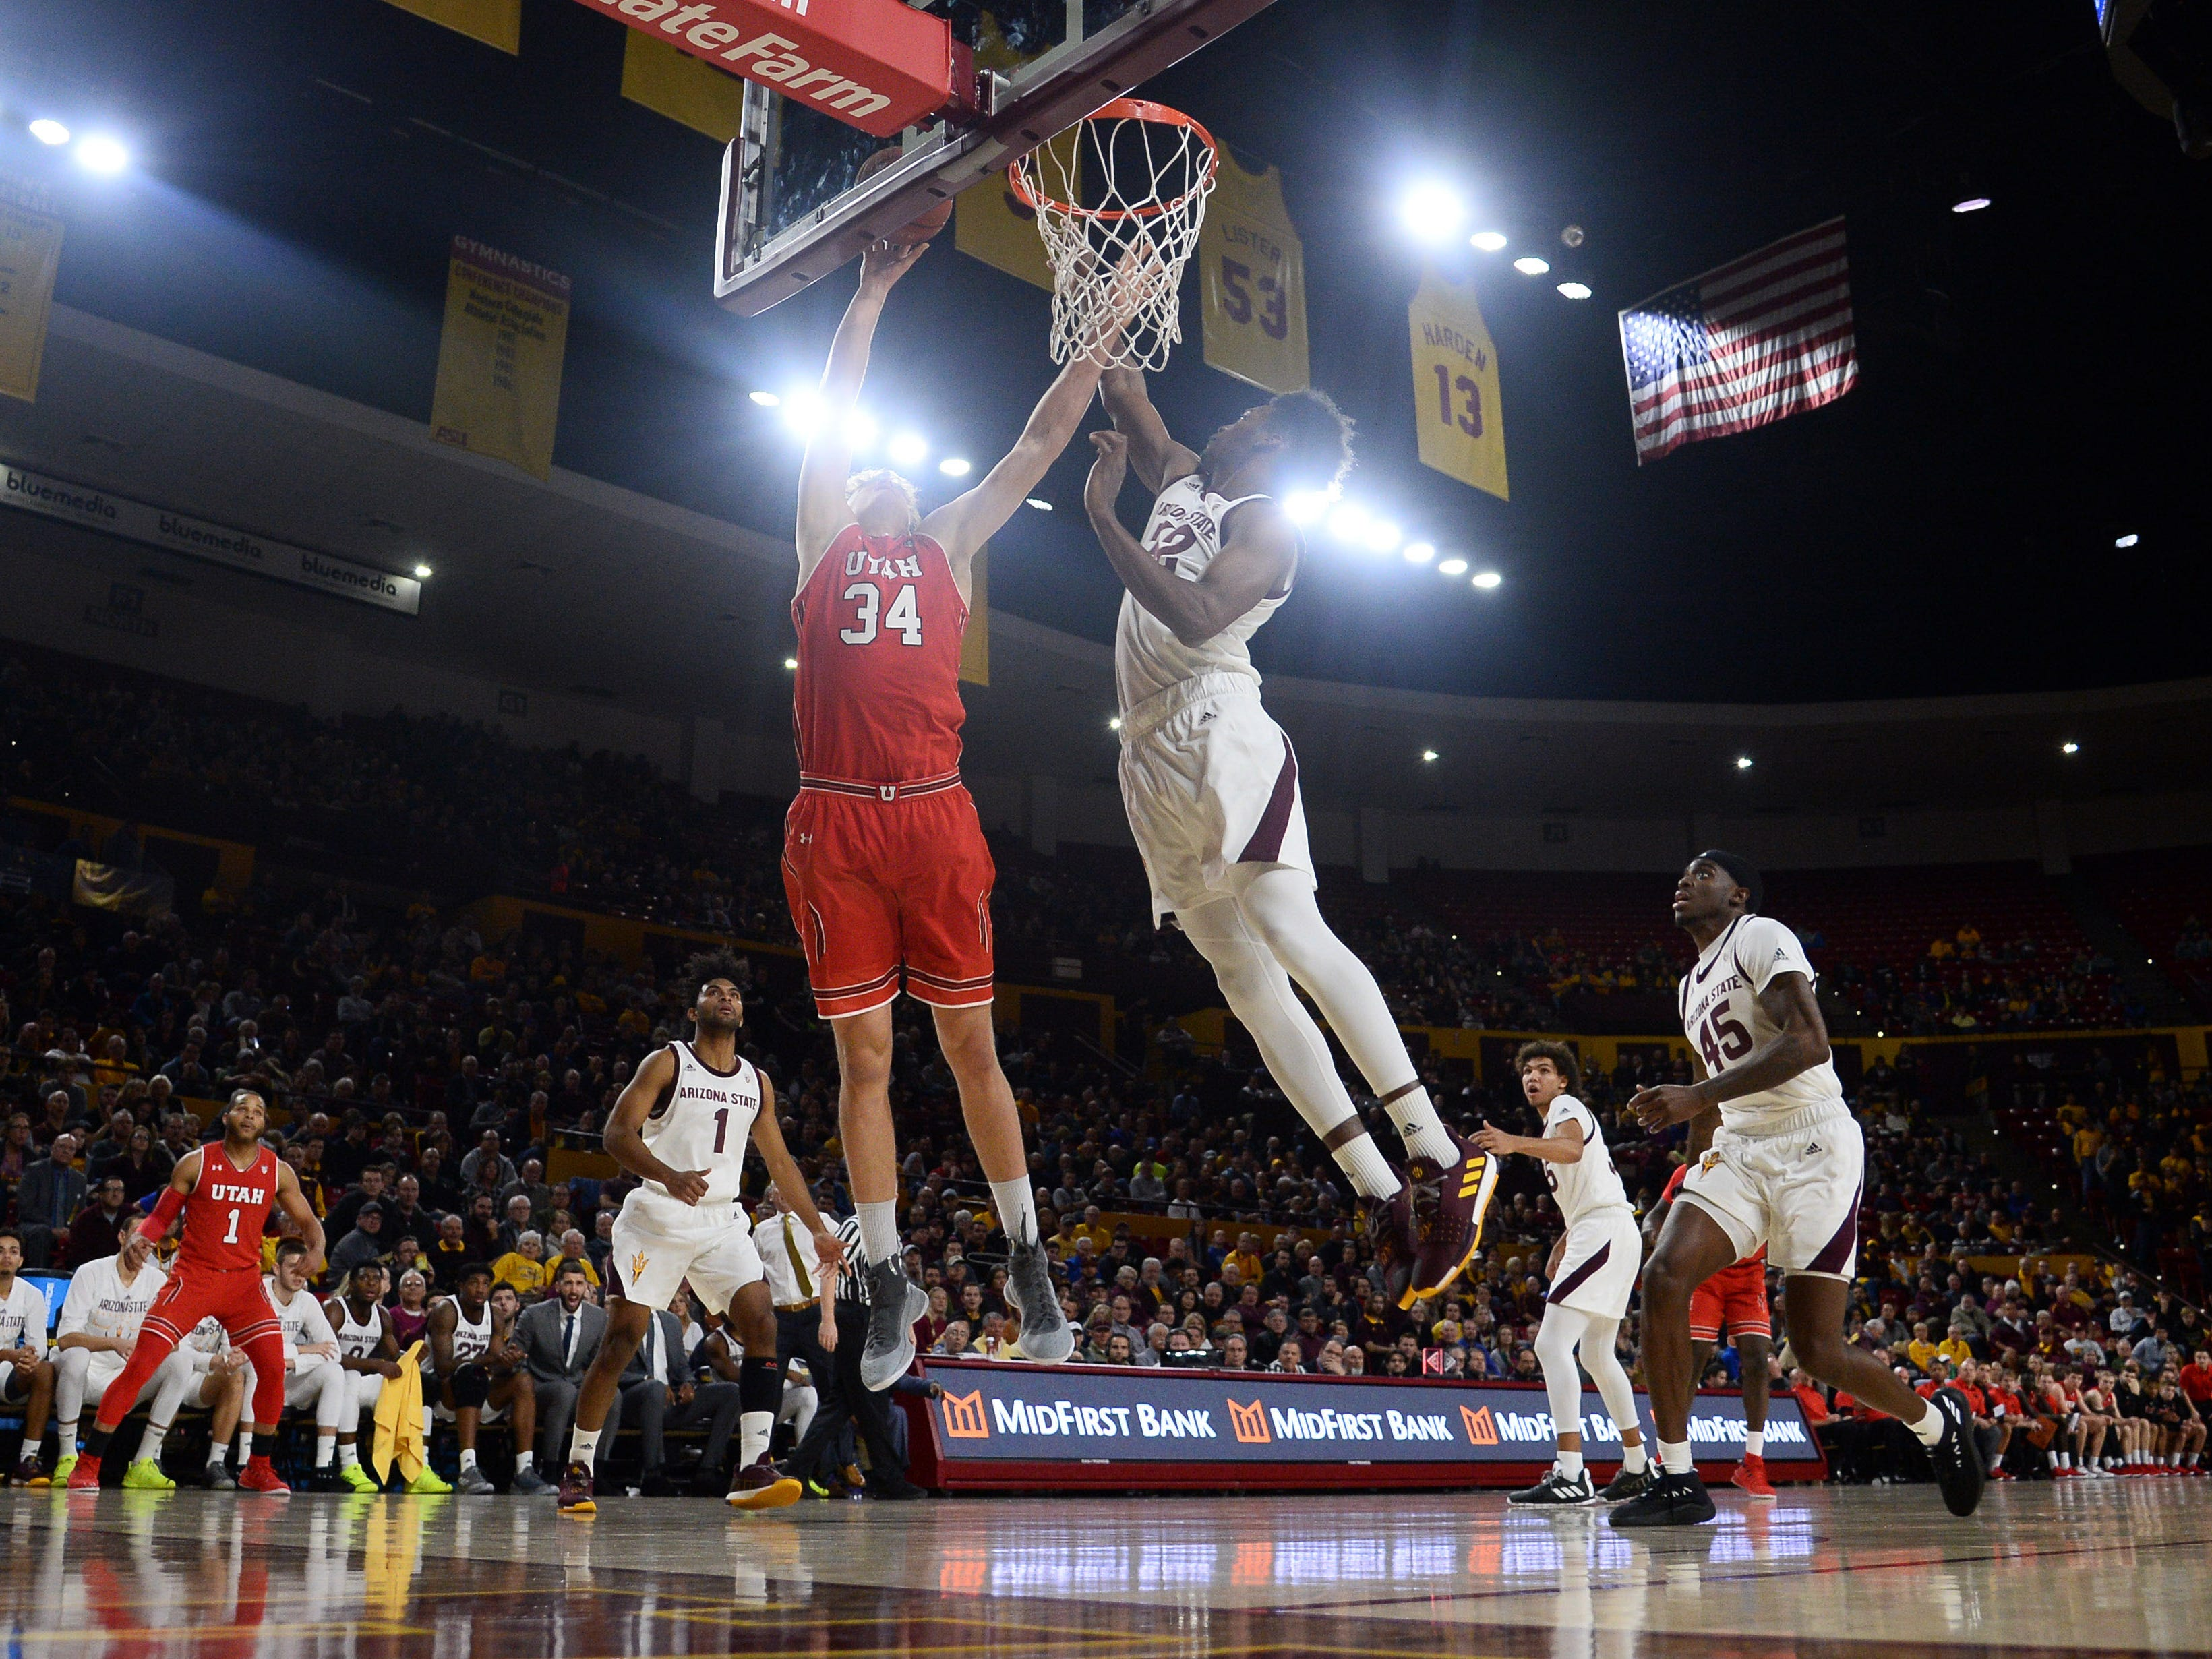 Jan 3, 2019; Tempe, AZ, USA; Utah Utes center Jayce Johnson (34) shoots the ball over Arizona State Sun Devils forward De'Quon Lake (32) during the first half at Wells Fargo Arena (AZ). Mandatory Credit: Joe Camporeale-USA TODAY Sports